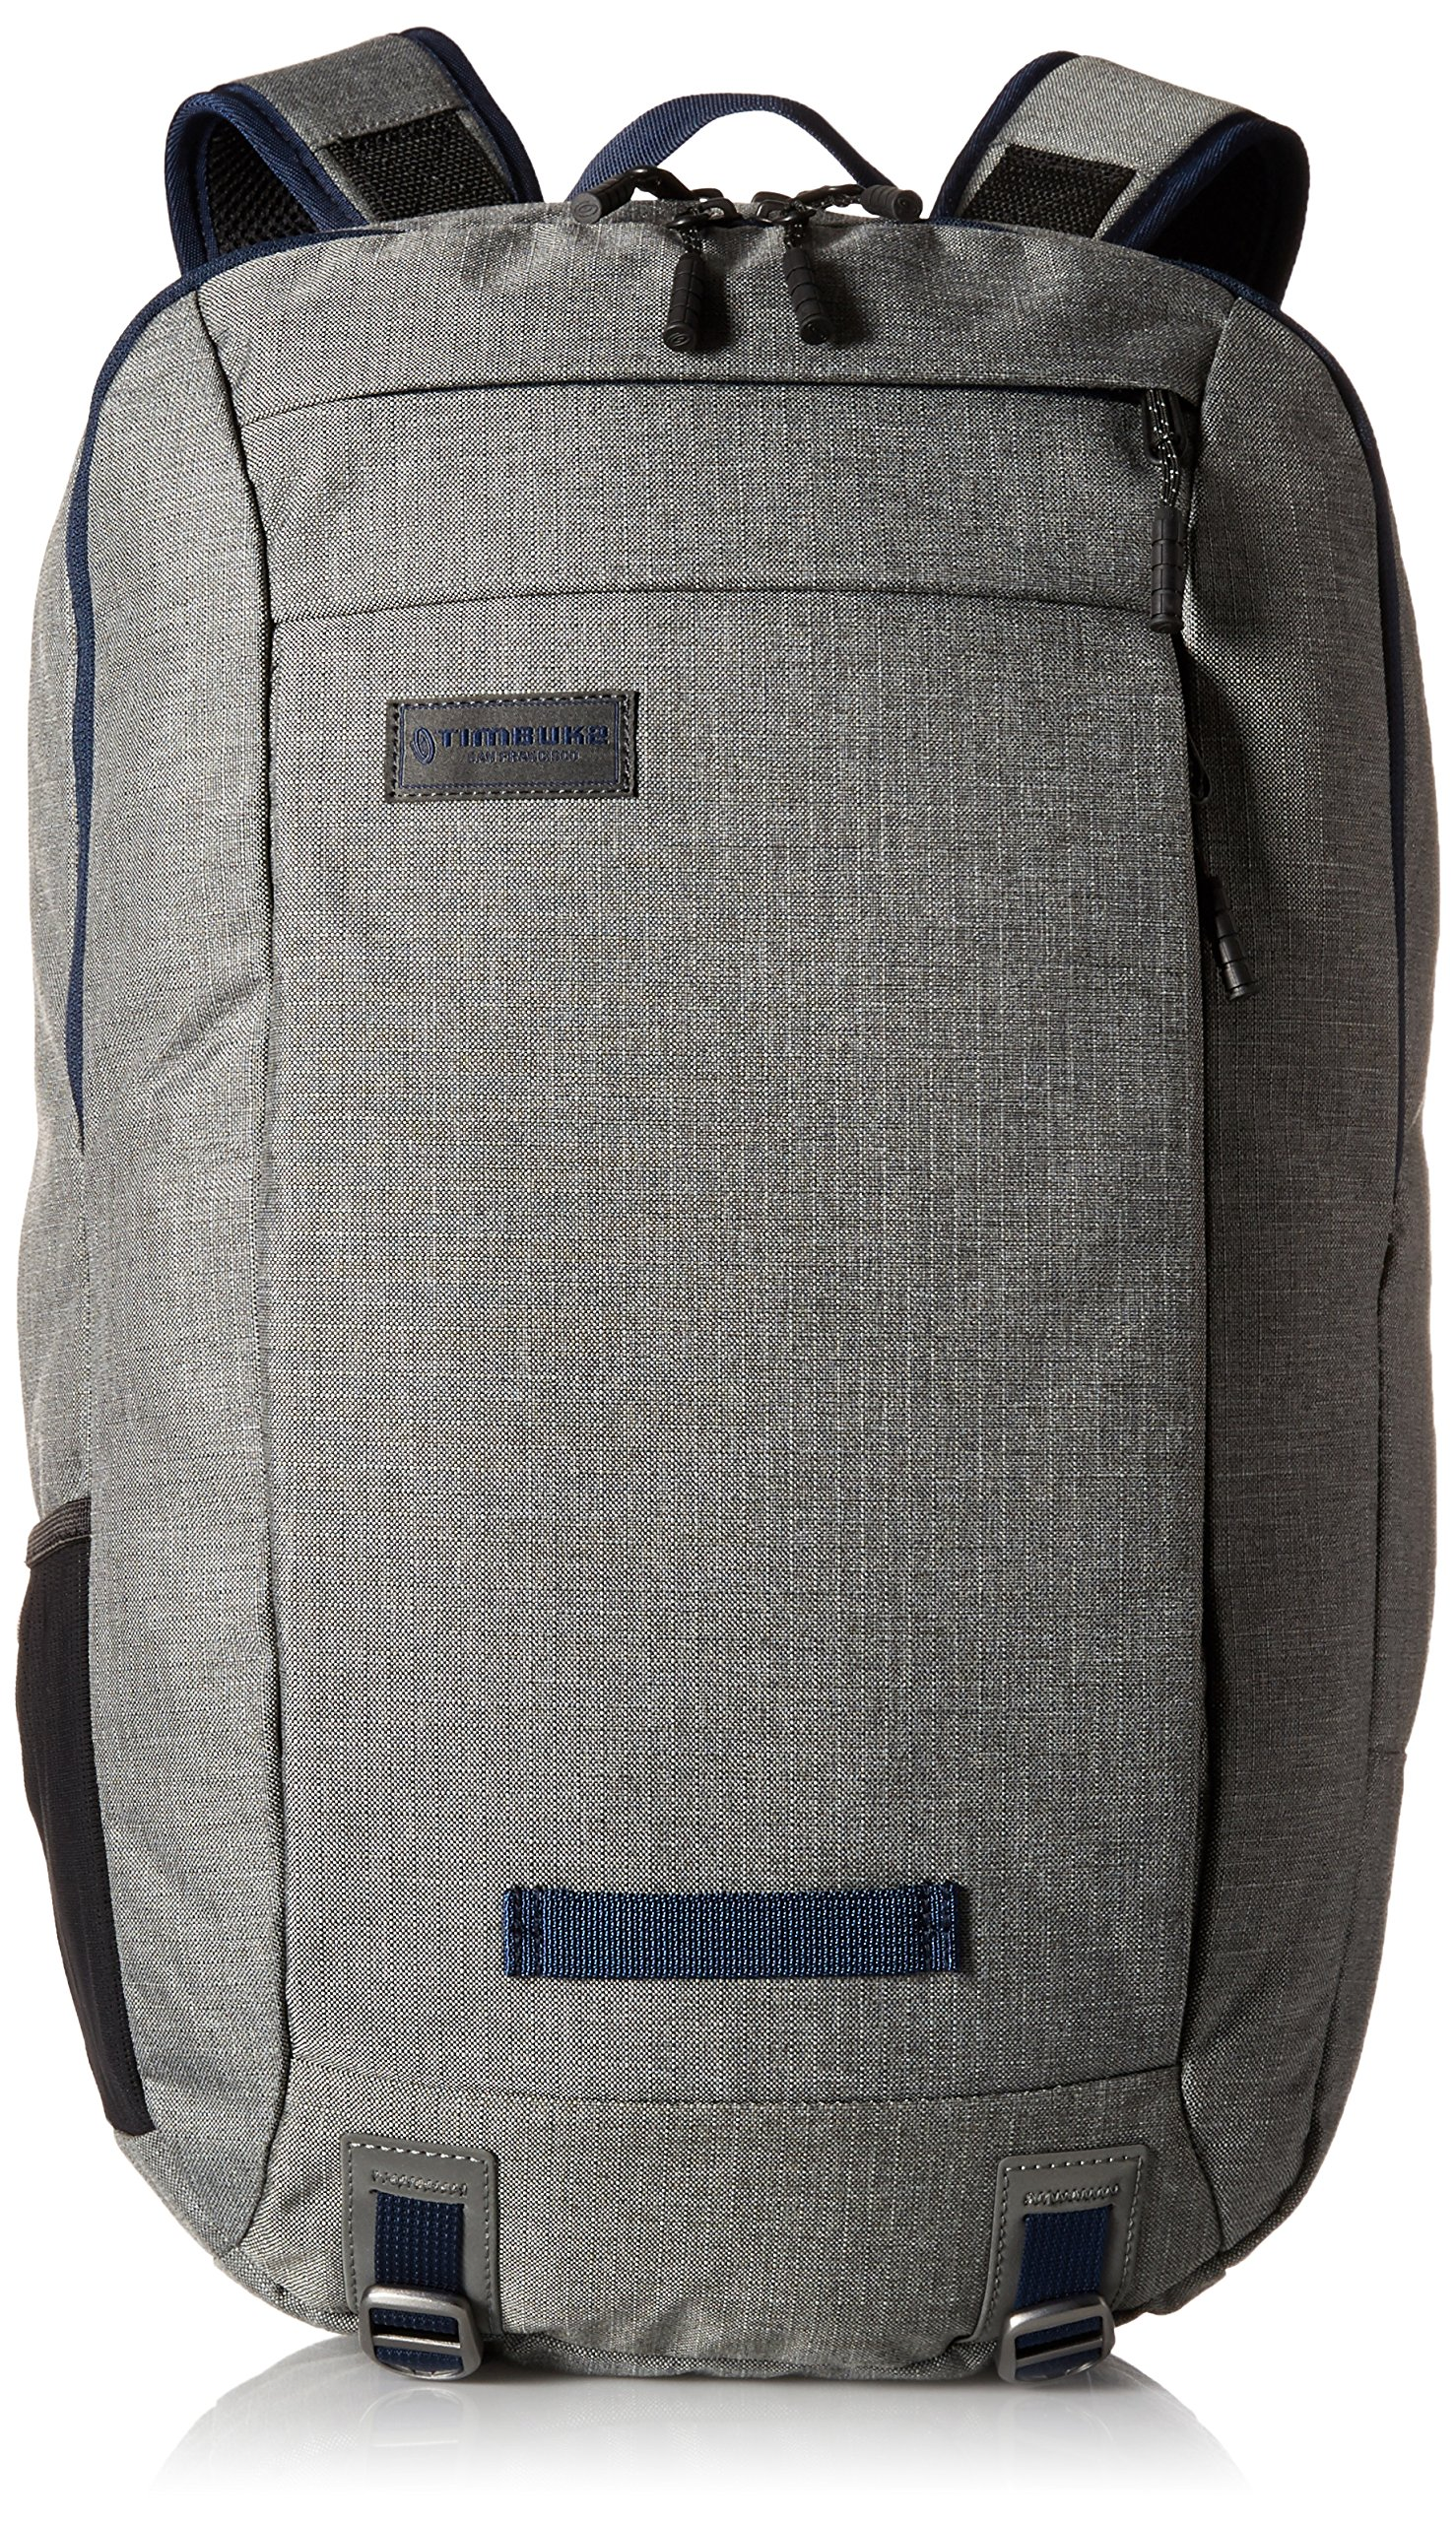 Timbuk2 Command Travel-Friendly Laptop Backpack, Midway by Timbuk2